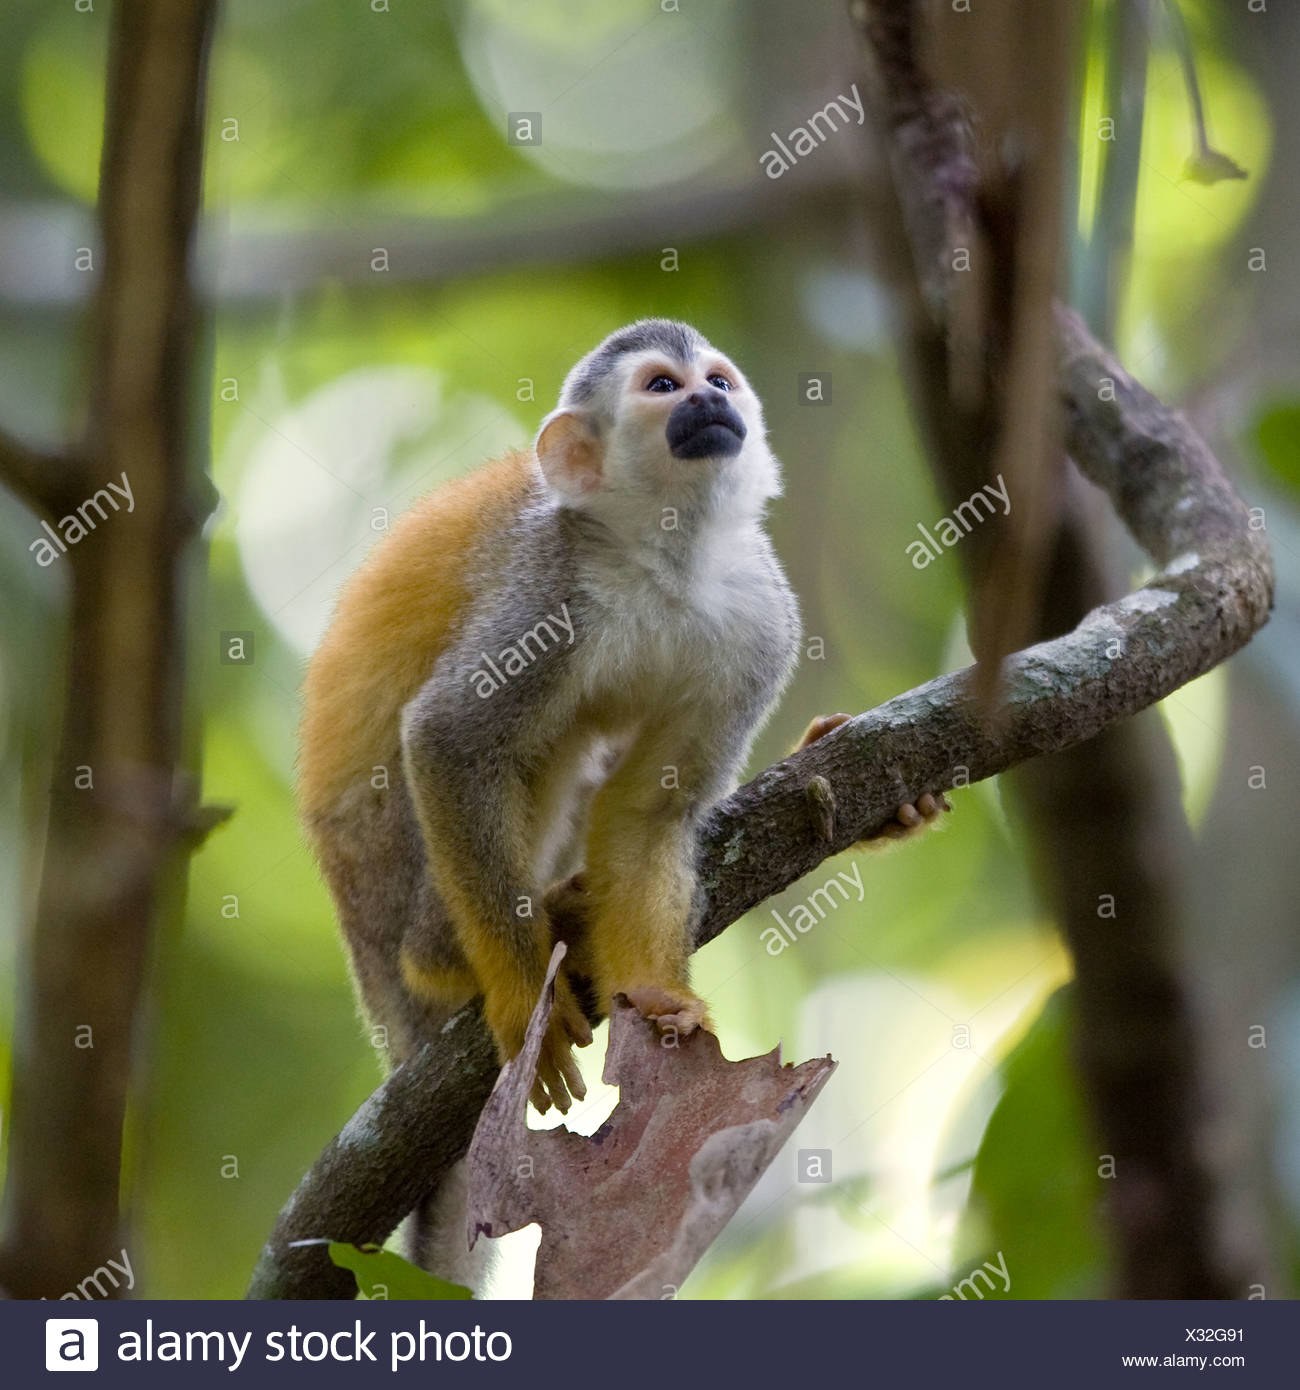 Red-backed squirrel monkey, Costa Rica. - Stock Image